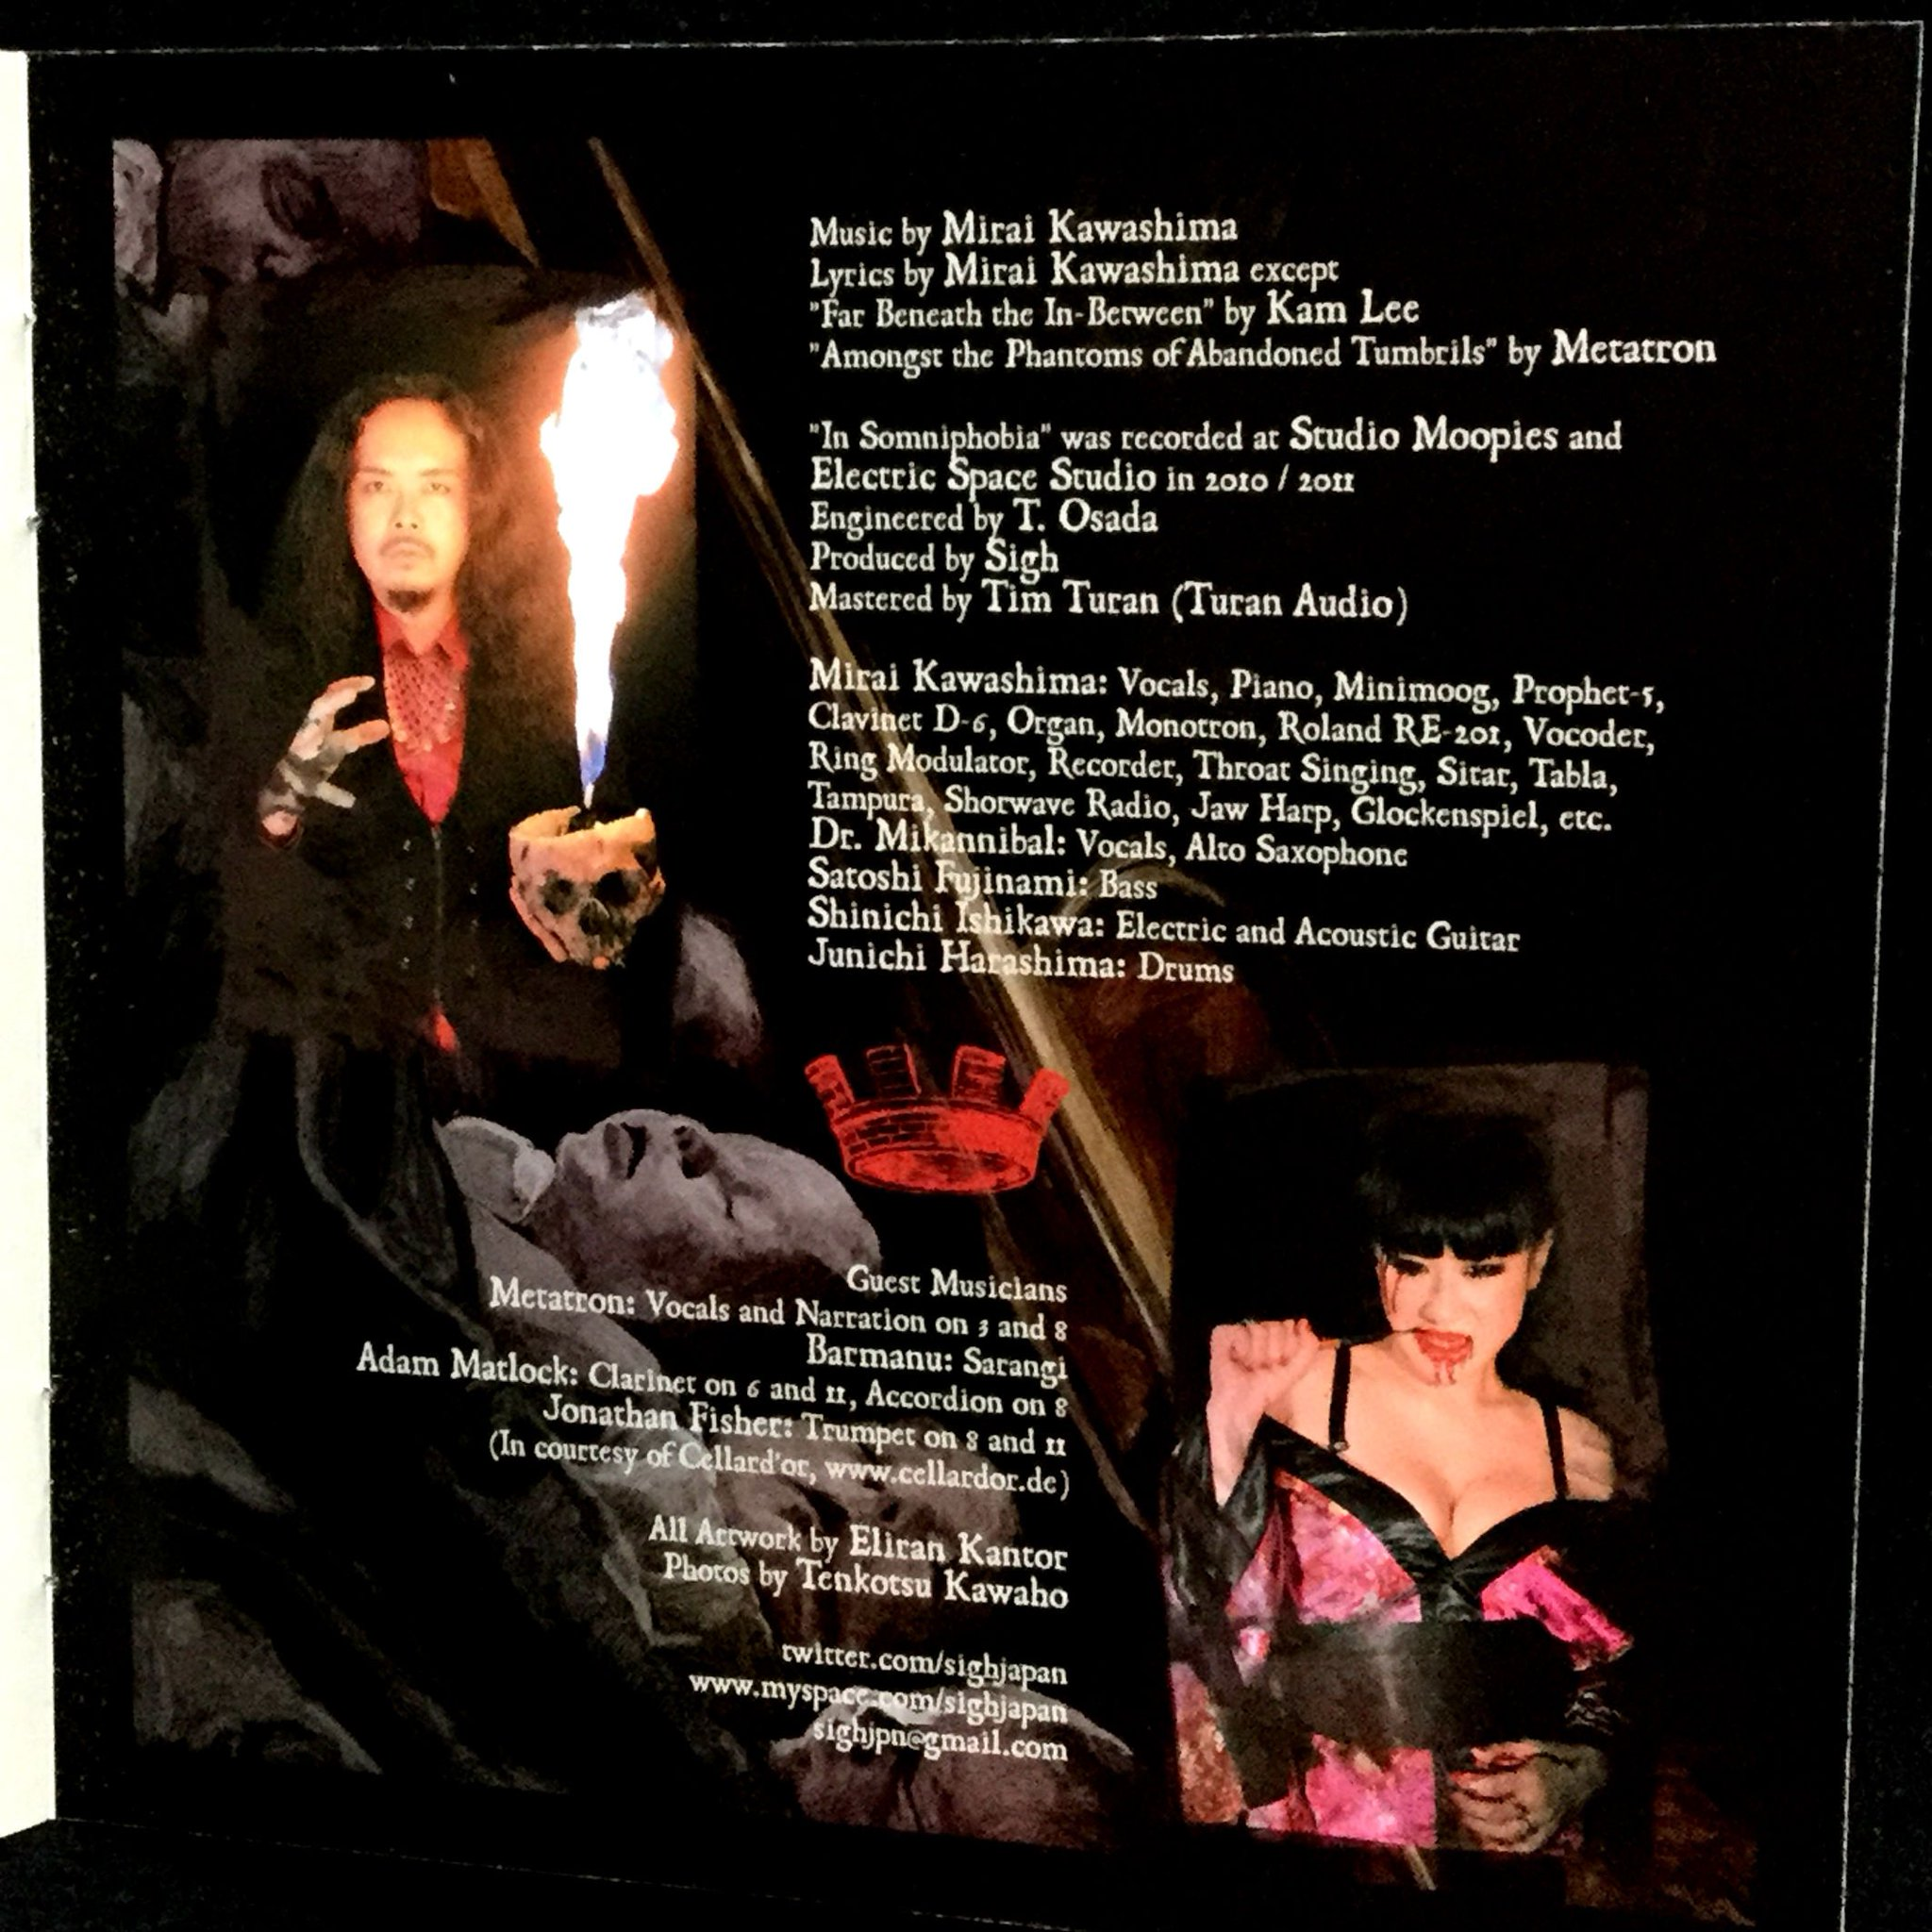 Youcharist On Twitter 7th Anniversary Sigh In Somniphobia March 12th 2012 Uk Ma Discogs Purgatorium Https T Co Kmbsdbwq9r Amongst The Phantoms Https T Co Rsk0rerrek Equale Https T Co Lrpksehtef